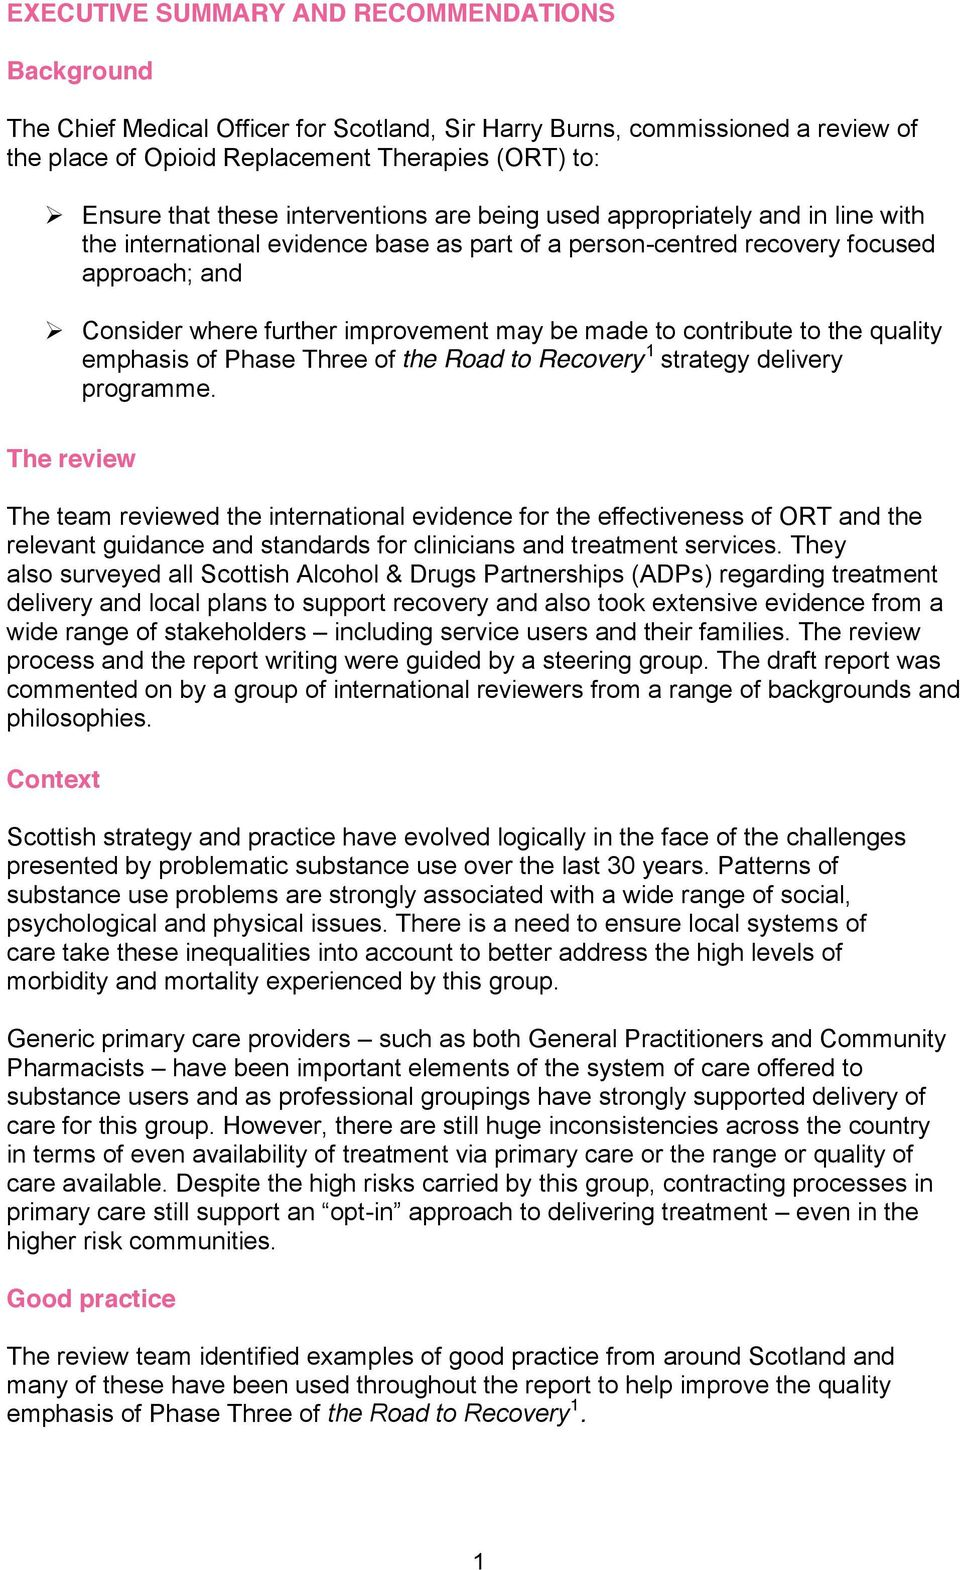 made to contribute to the quality emphasis of Phase Three of the Road to Recovery 1 strategy delivery programme.